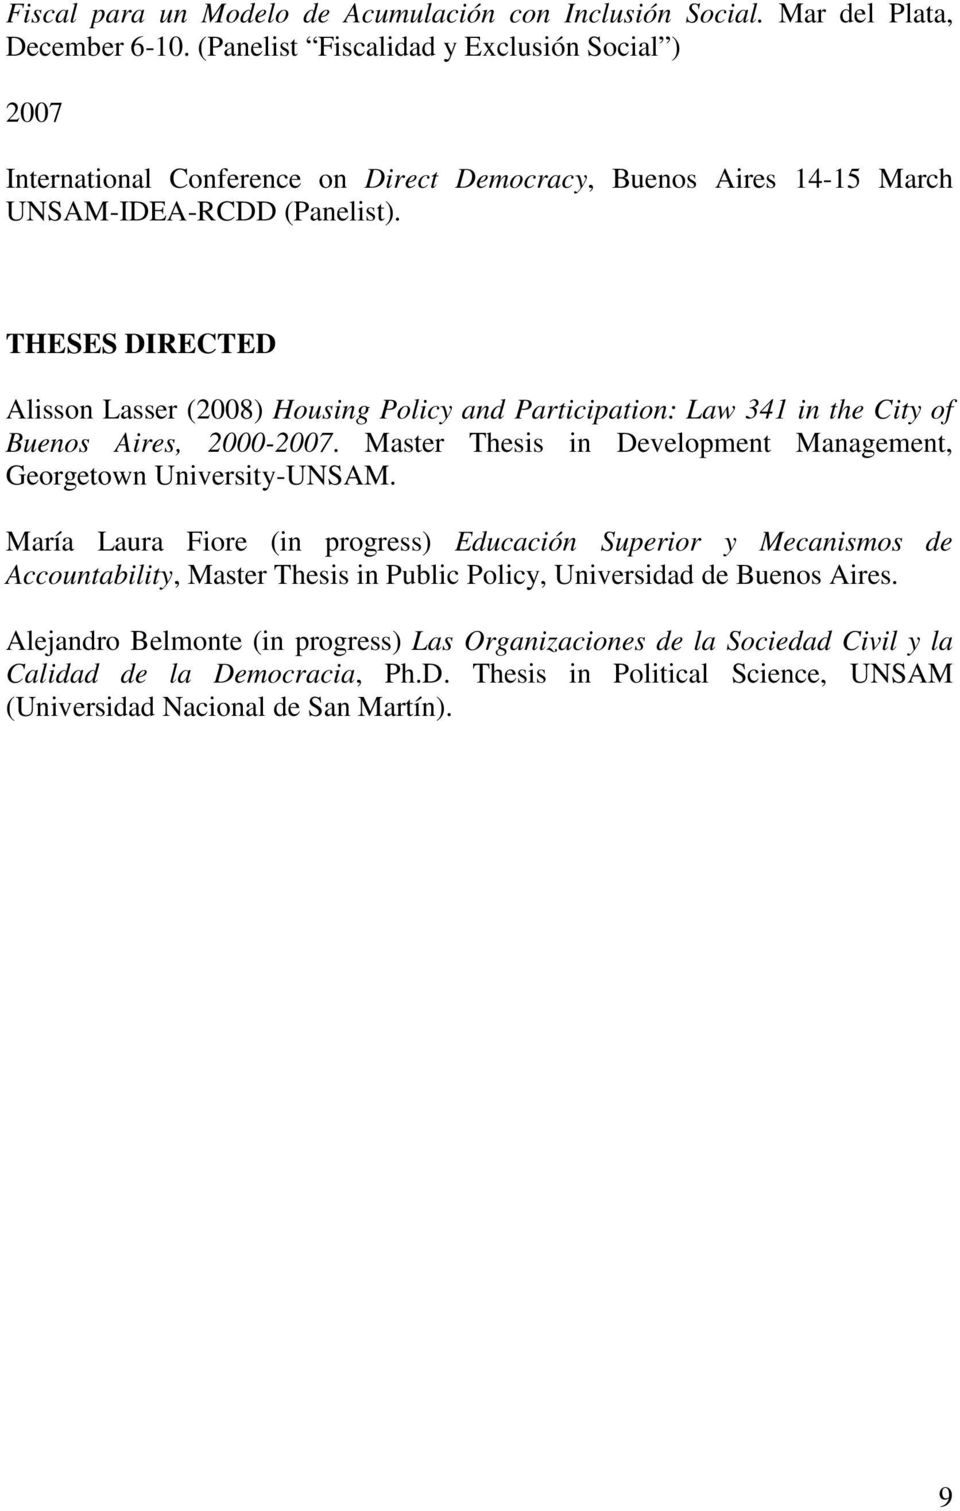 THESES DIRECTED Alisson Lasser (2008) Housing Policy and Participation: Law 341 in the City of Buenos Aires, 2000-2007. Master Thesis in Development Management, Georgetown University-UNSAM.